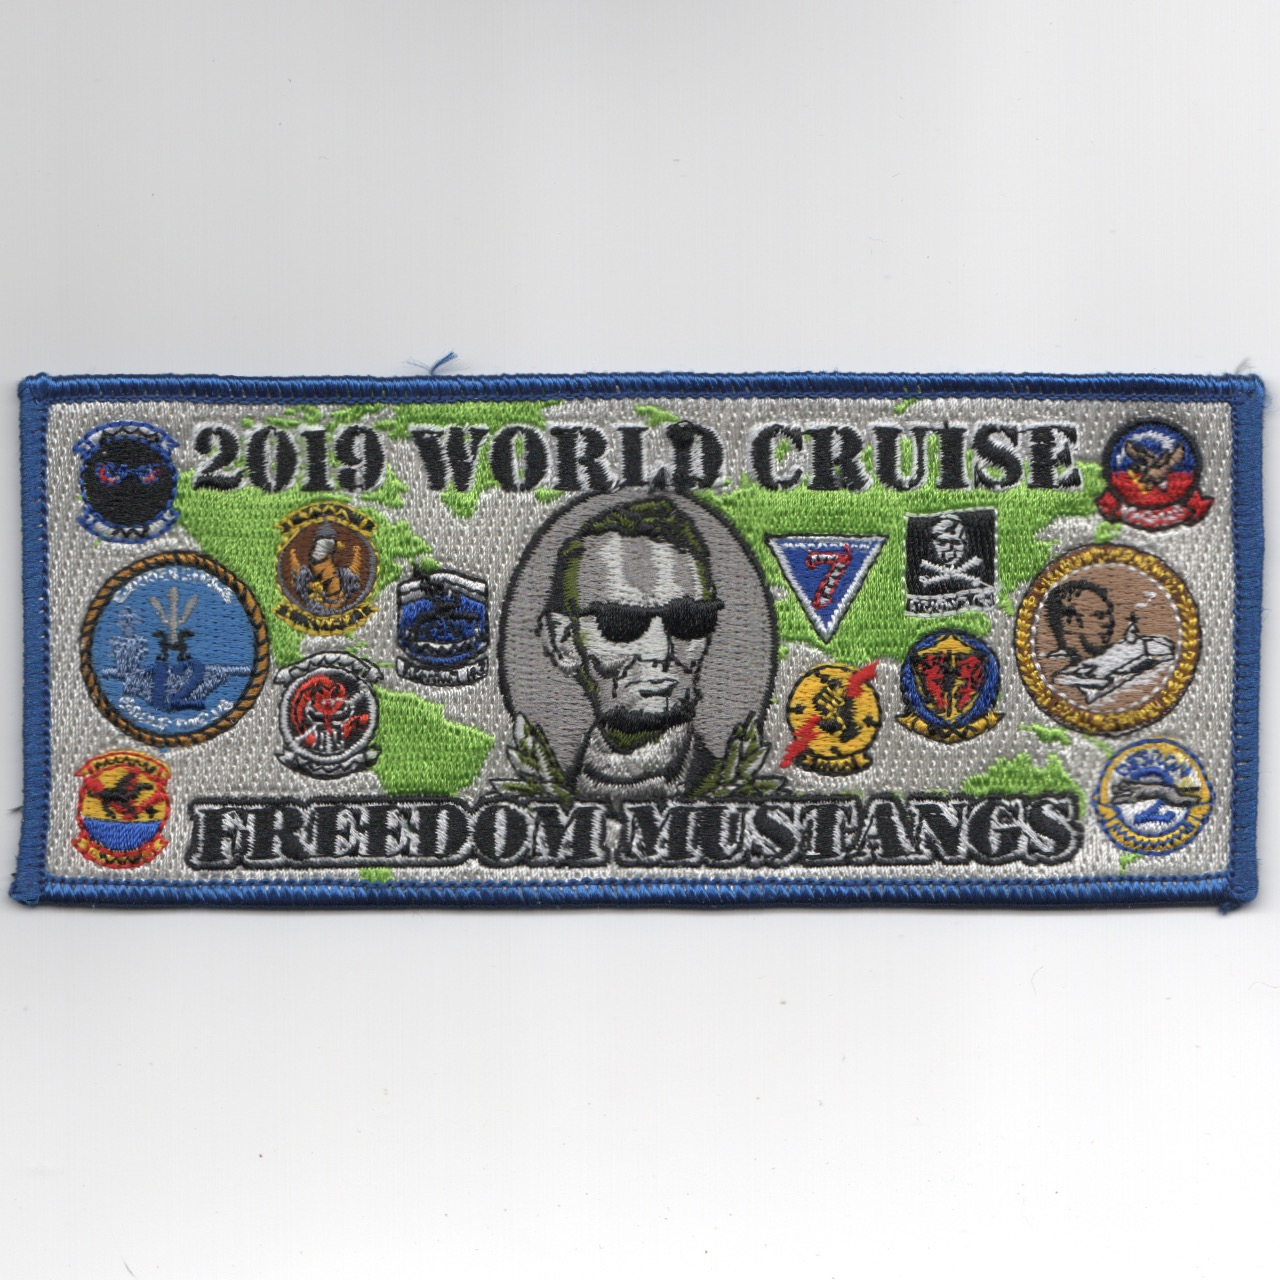 VFA-143 2019 'FREEDOM' Cruise Patch